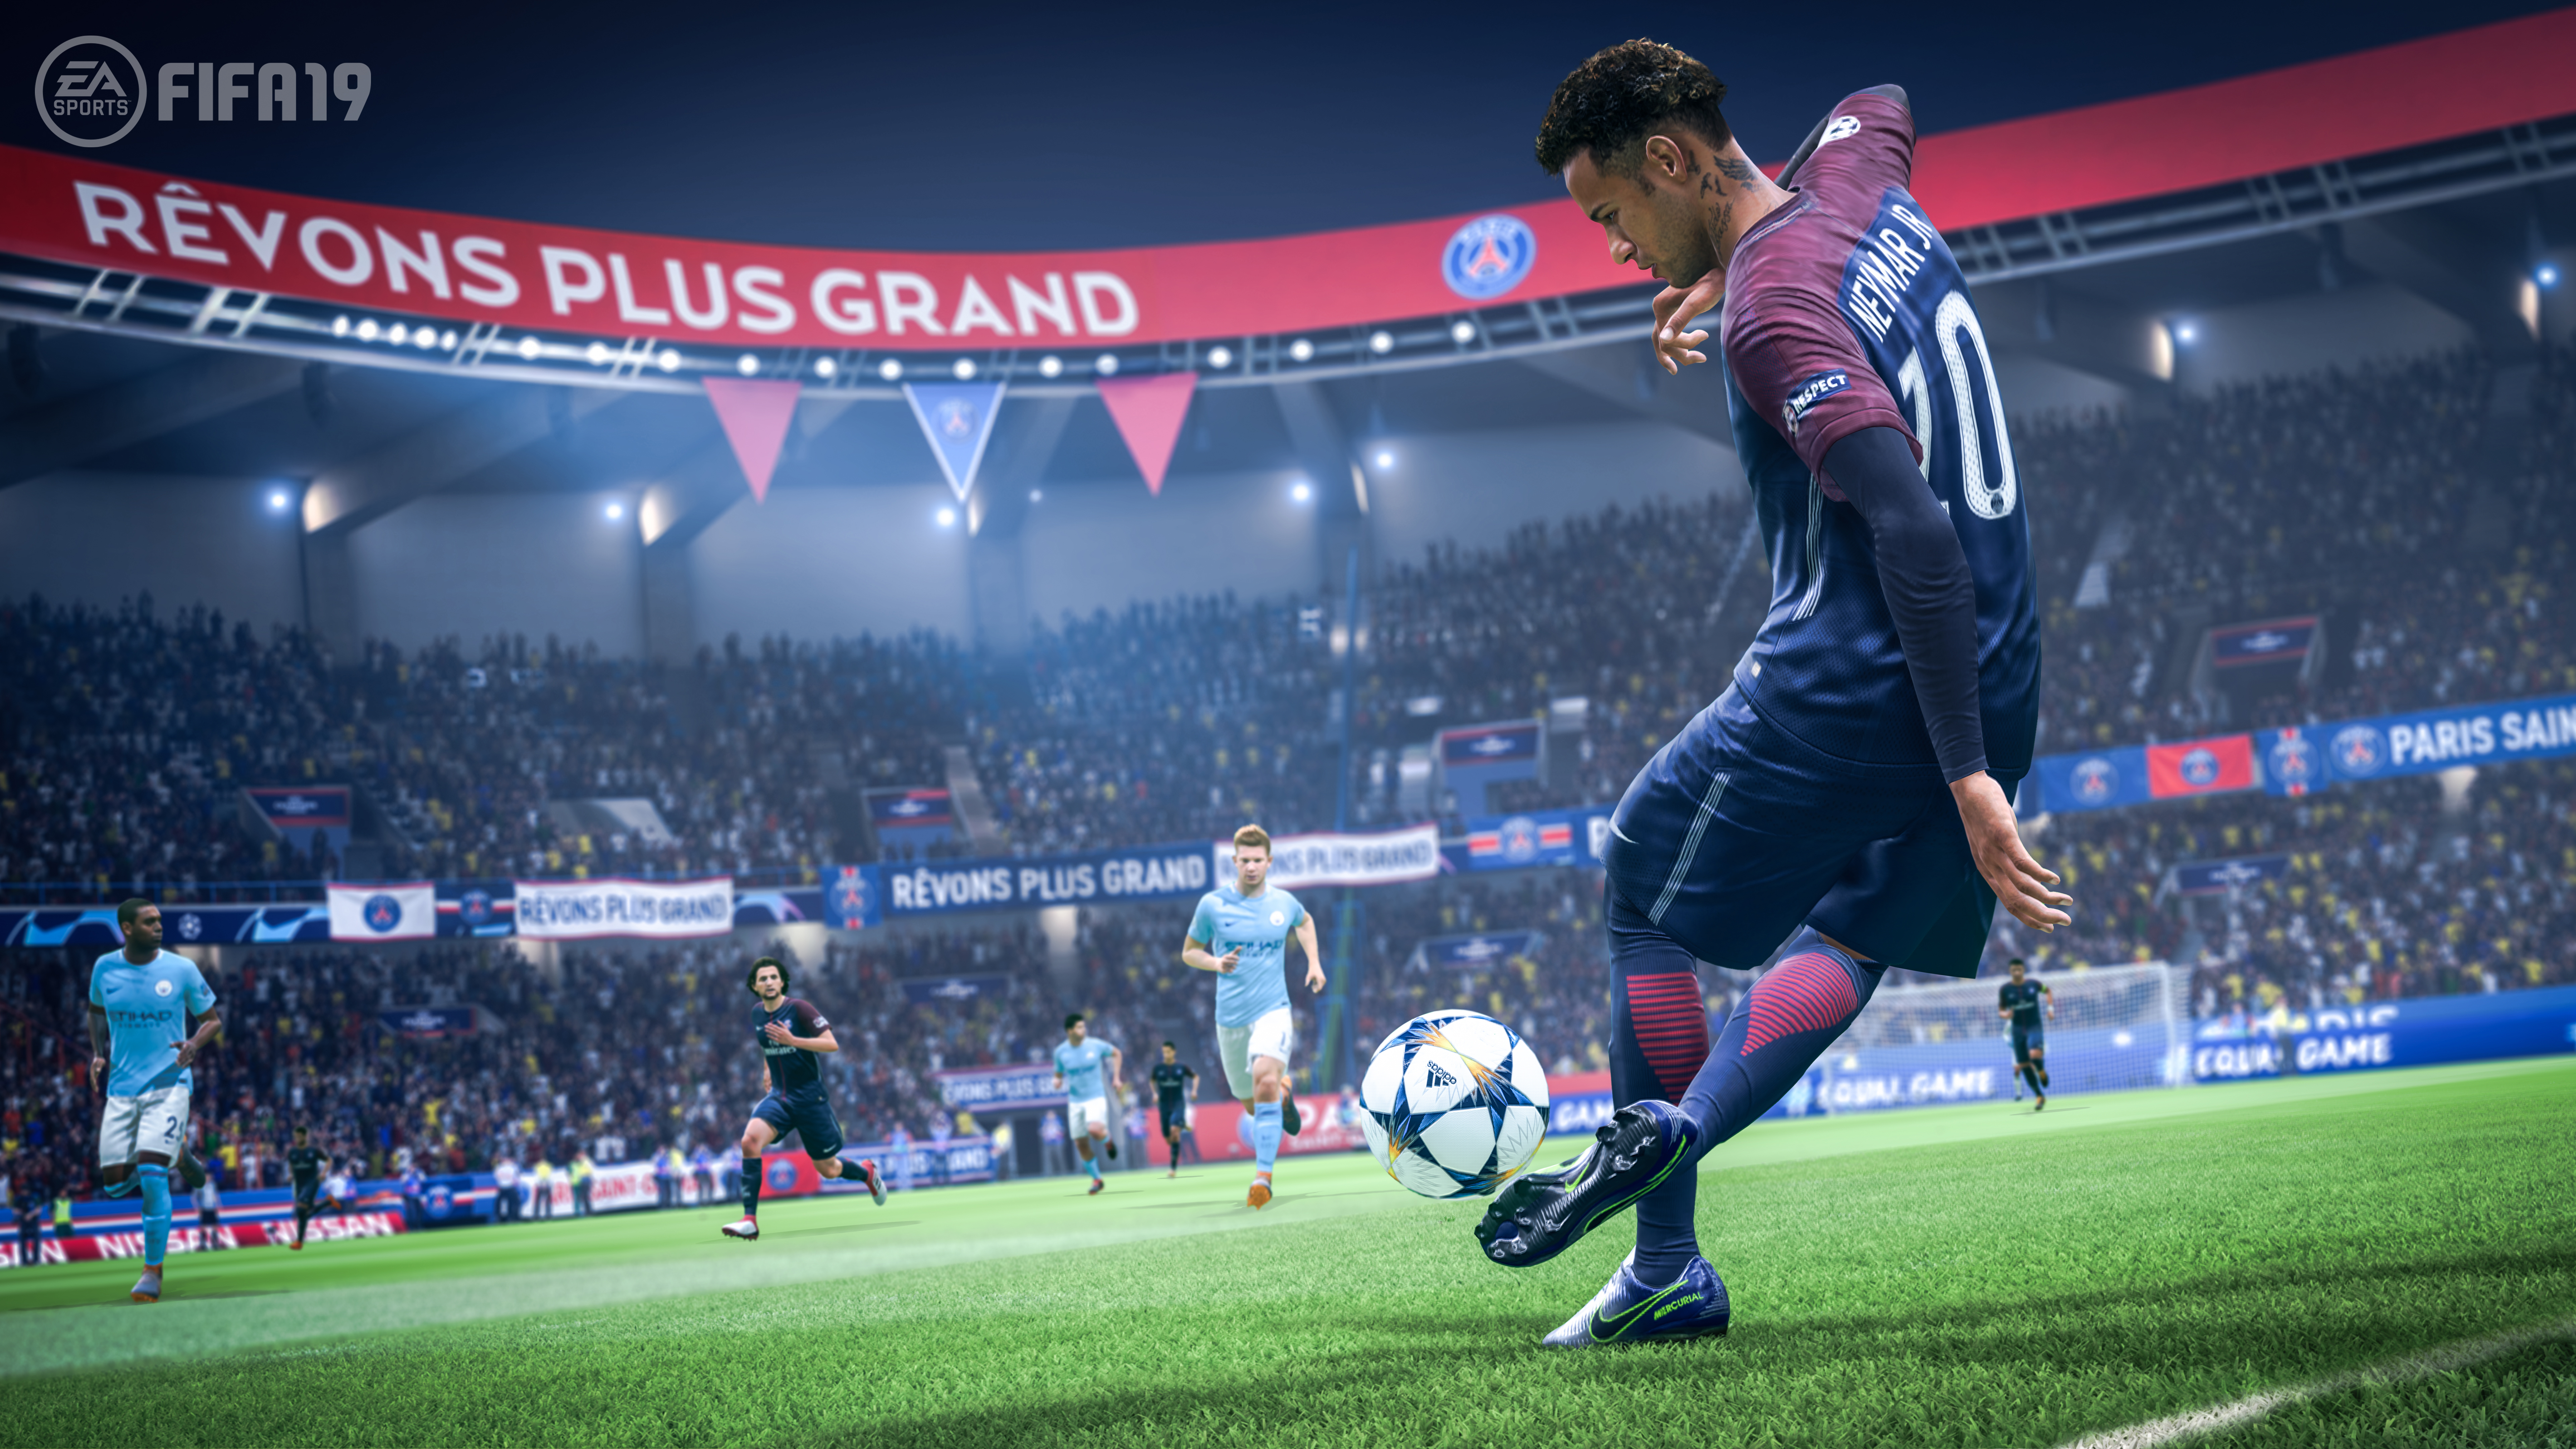 The Worst Player In FIFA 19 Ultimate Team Has Been Revealed